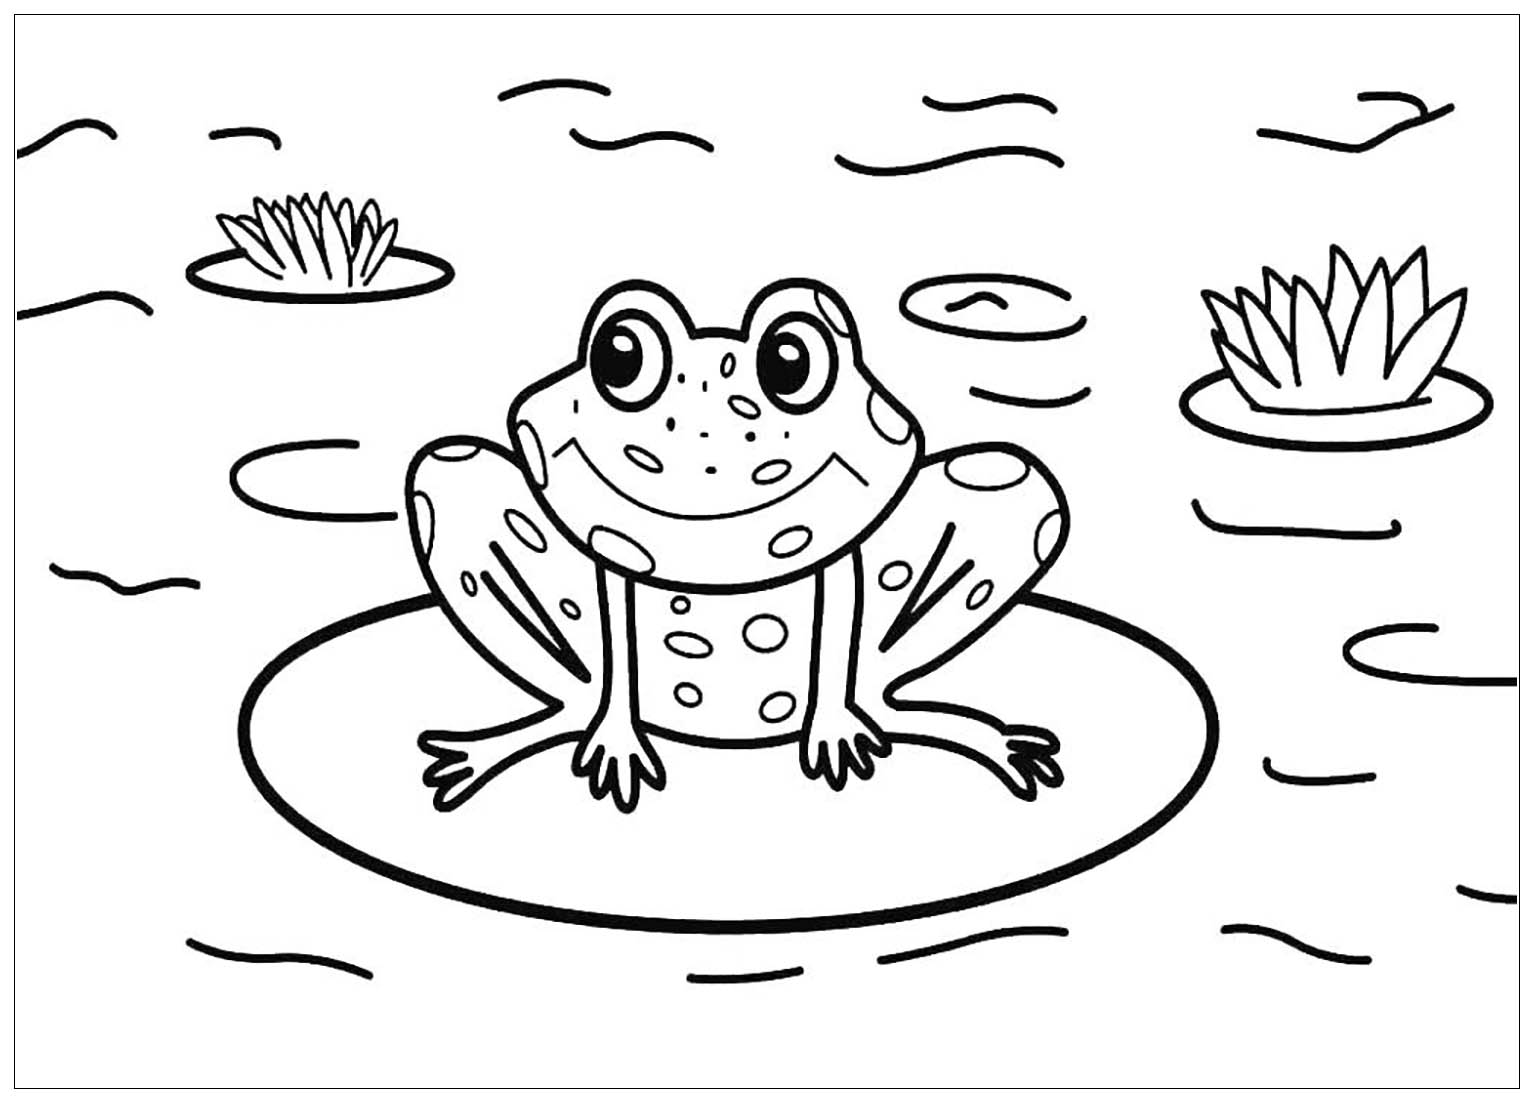 Frogs for kids - Frogs Kids Coloring Pages